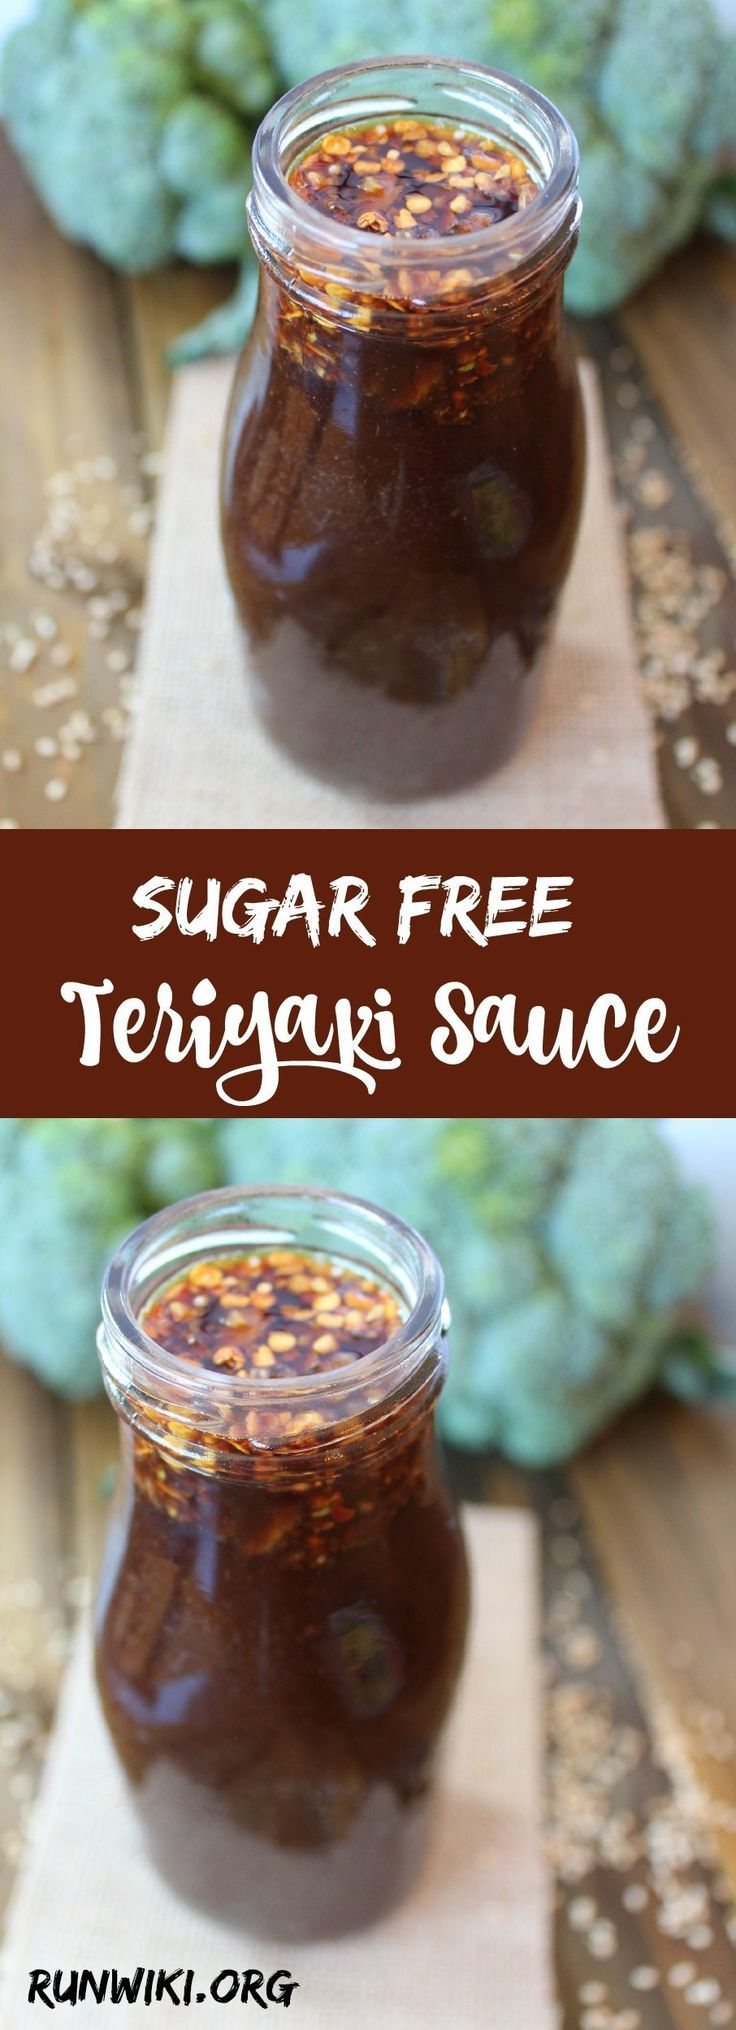 100+ Teriyaki sauce recipes on Pinterest | Easy teriyaki sauce recipe, Teriyaki grill and ...